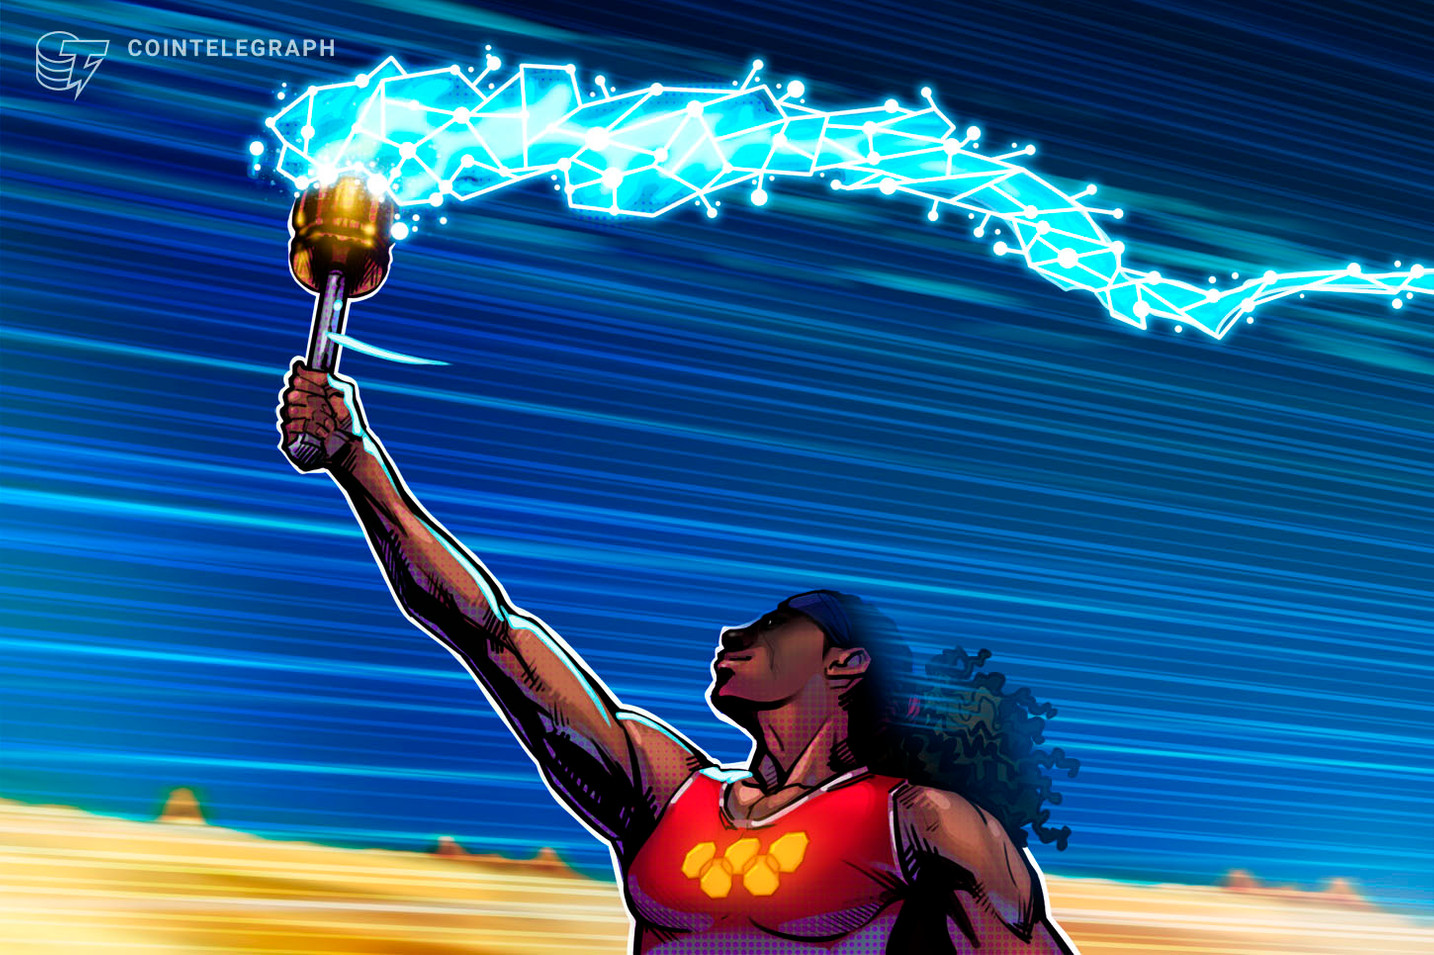 La pluricampionessa olimpica Serena Williams ha investito in Coinbase